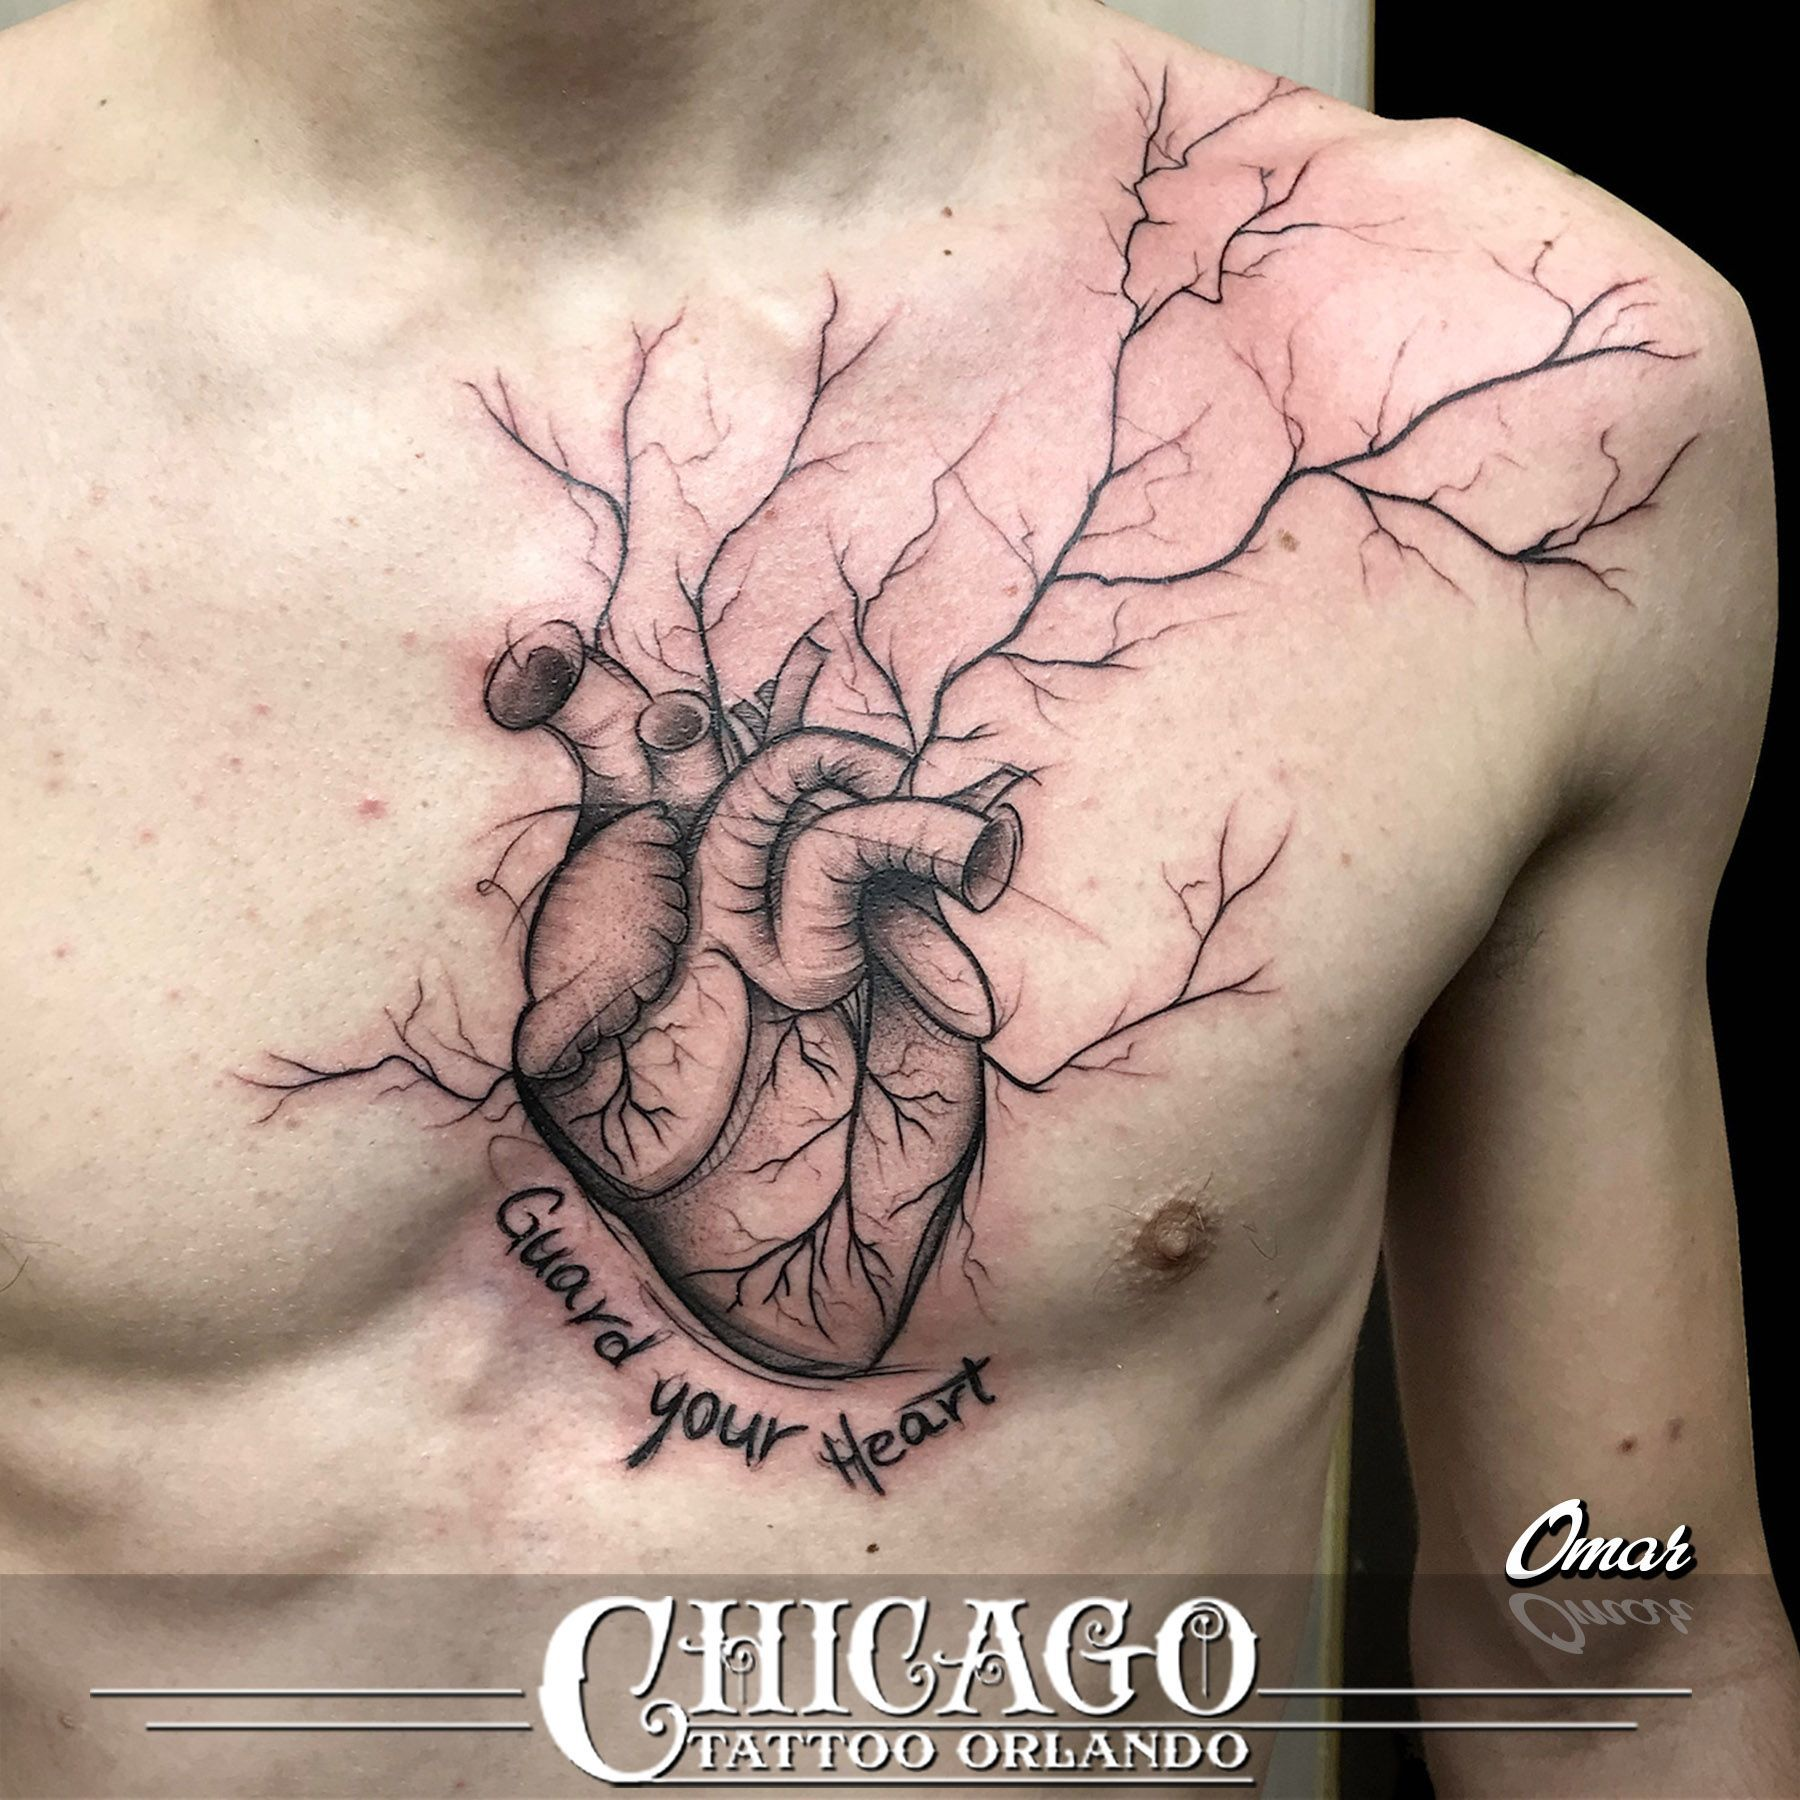 Chicago Tattoo Orlando Halloween 2020 A popular style these days, and for good reason. #GuardYourHeart